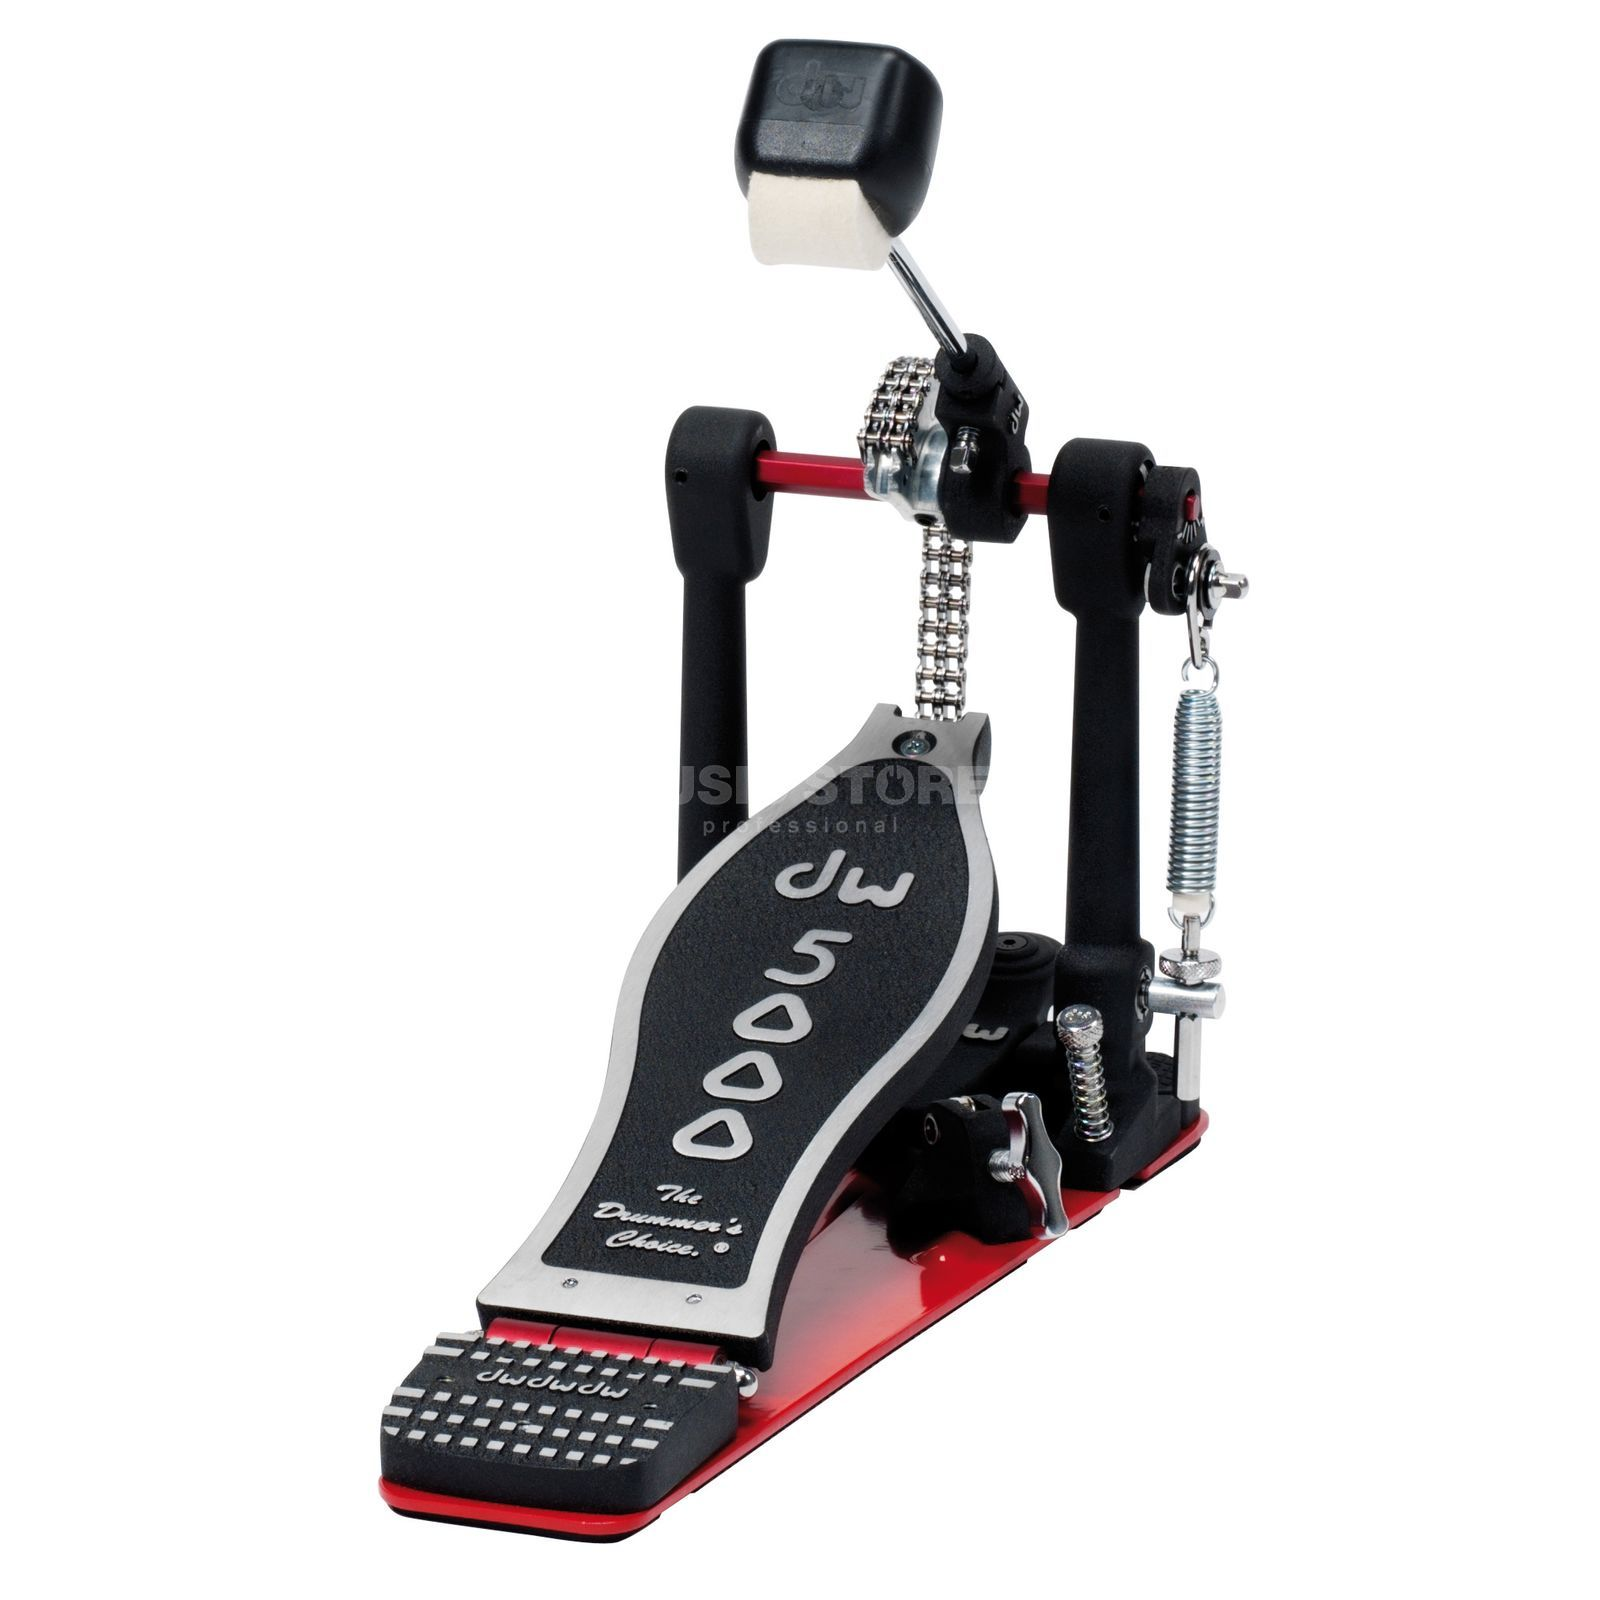 Drum Workshop Kick Pedal 5000TD4, Turbo Zdjęcie produktu